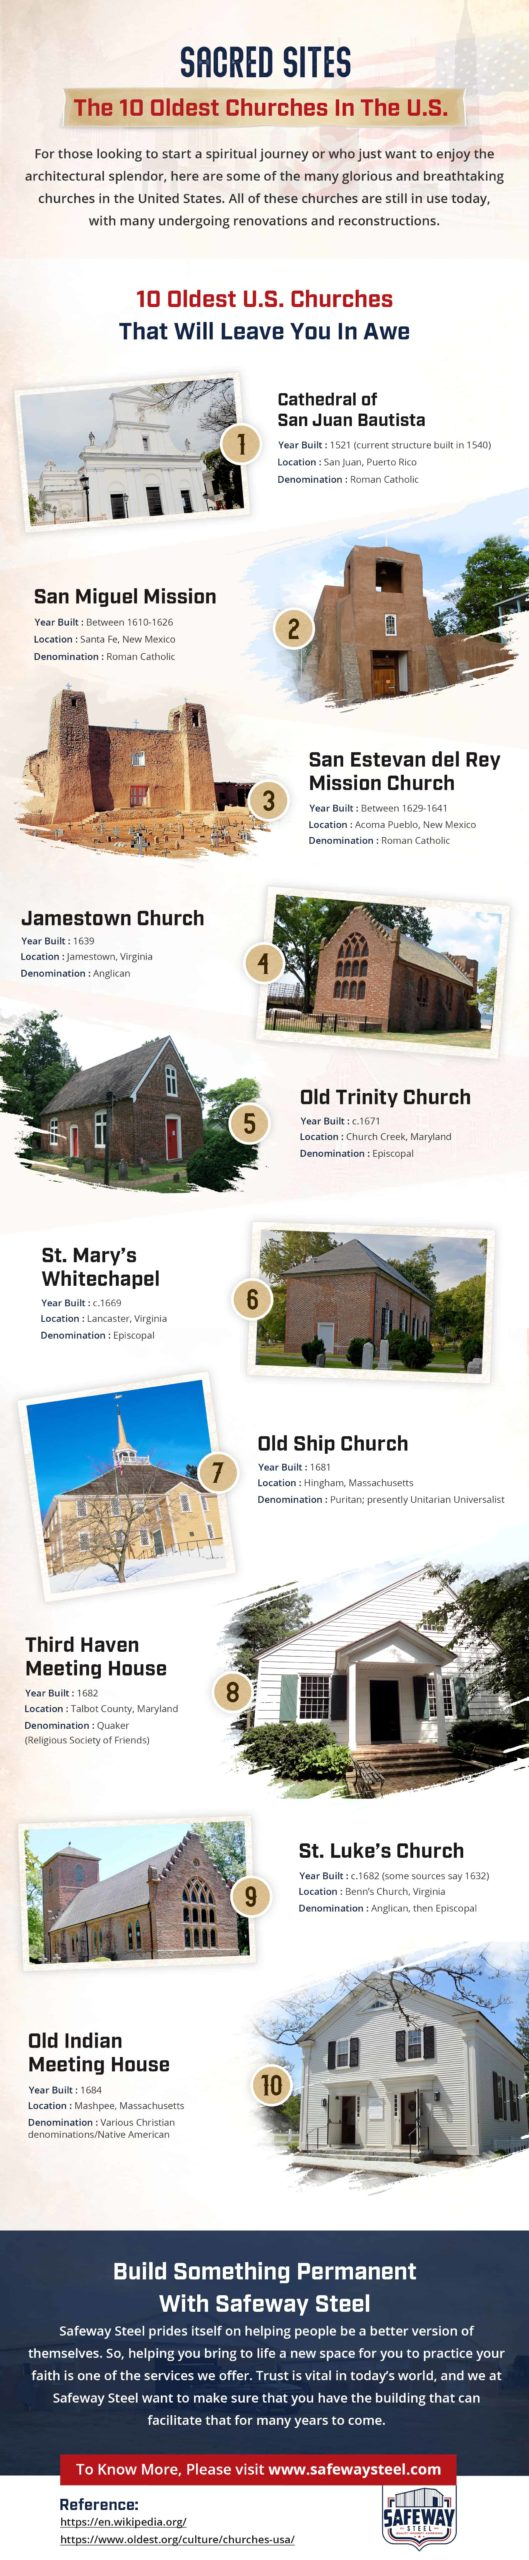 Sacred Sites: The 10 Oldest Churches in the U.S.